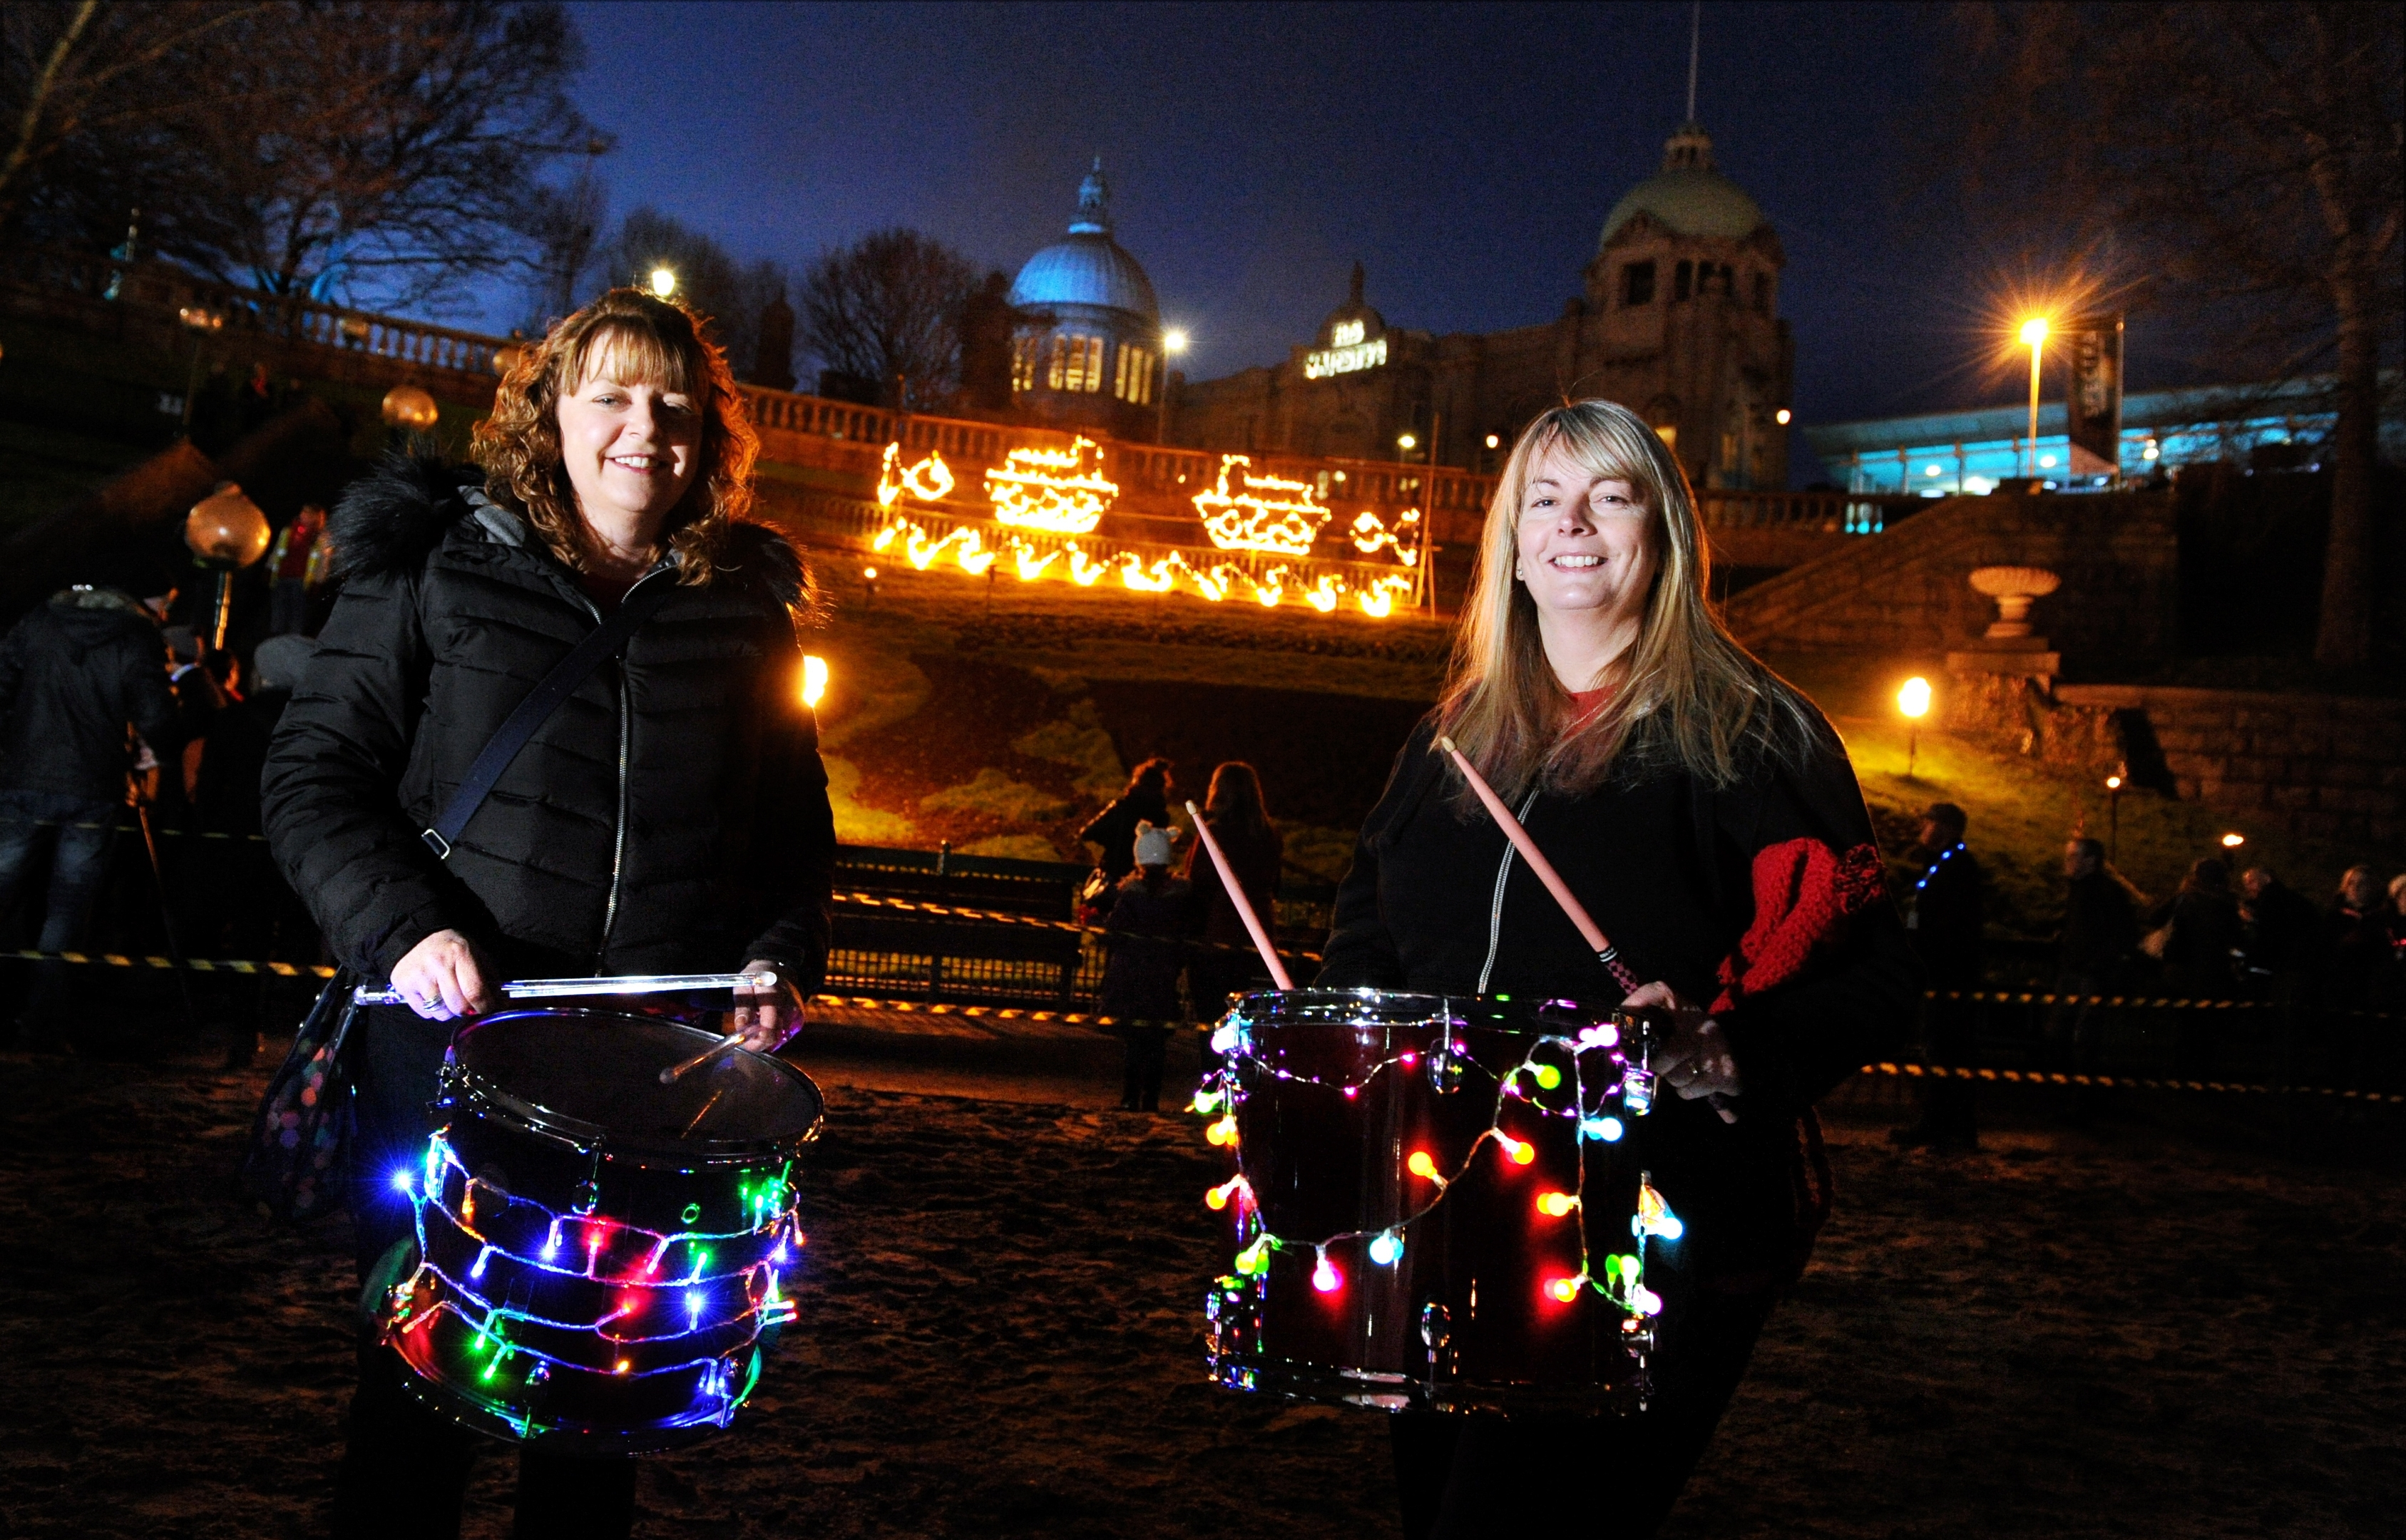 Carmen Murison and Julie Cleverdon performing in Union Terrace Gardens as part of last year's Spectra. (Picture: Kevin Emslie)